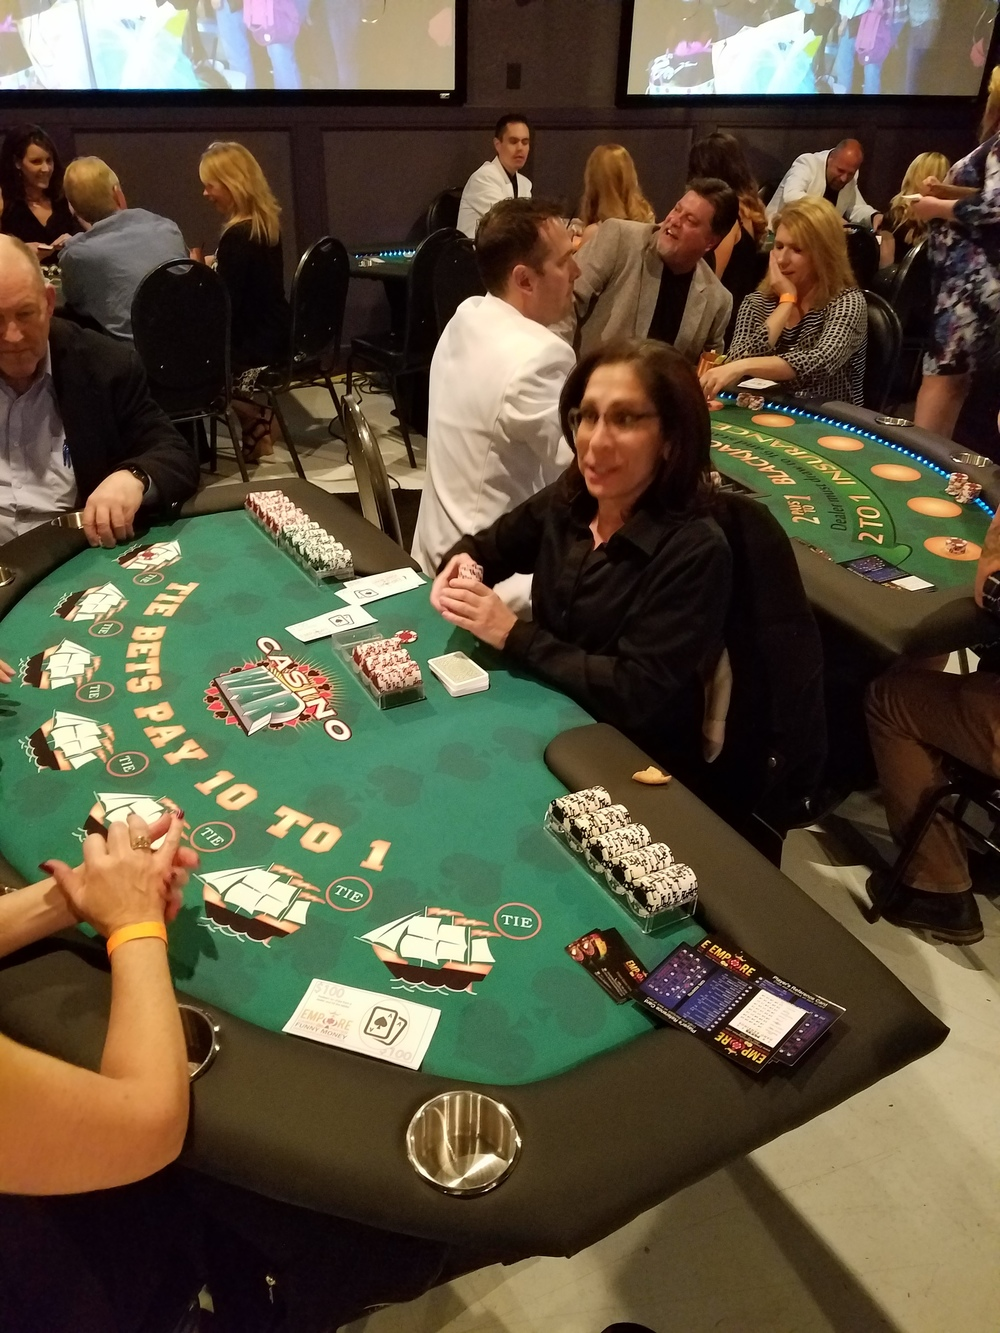 Wooden roulette buy black wooden roulette blackjack table led - Basically If Your Card Is Higher Than The Dealers You Win You Can Also Make A Bet That You Will Tie With The Dealer If You Win This Bet It Pays 10 To 1